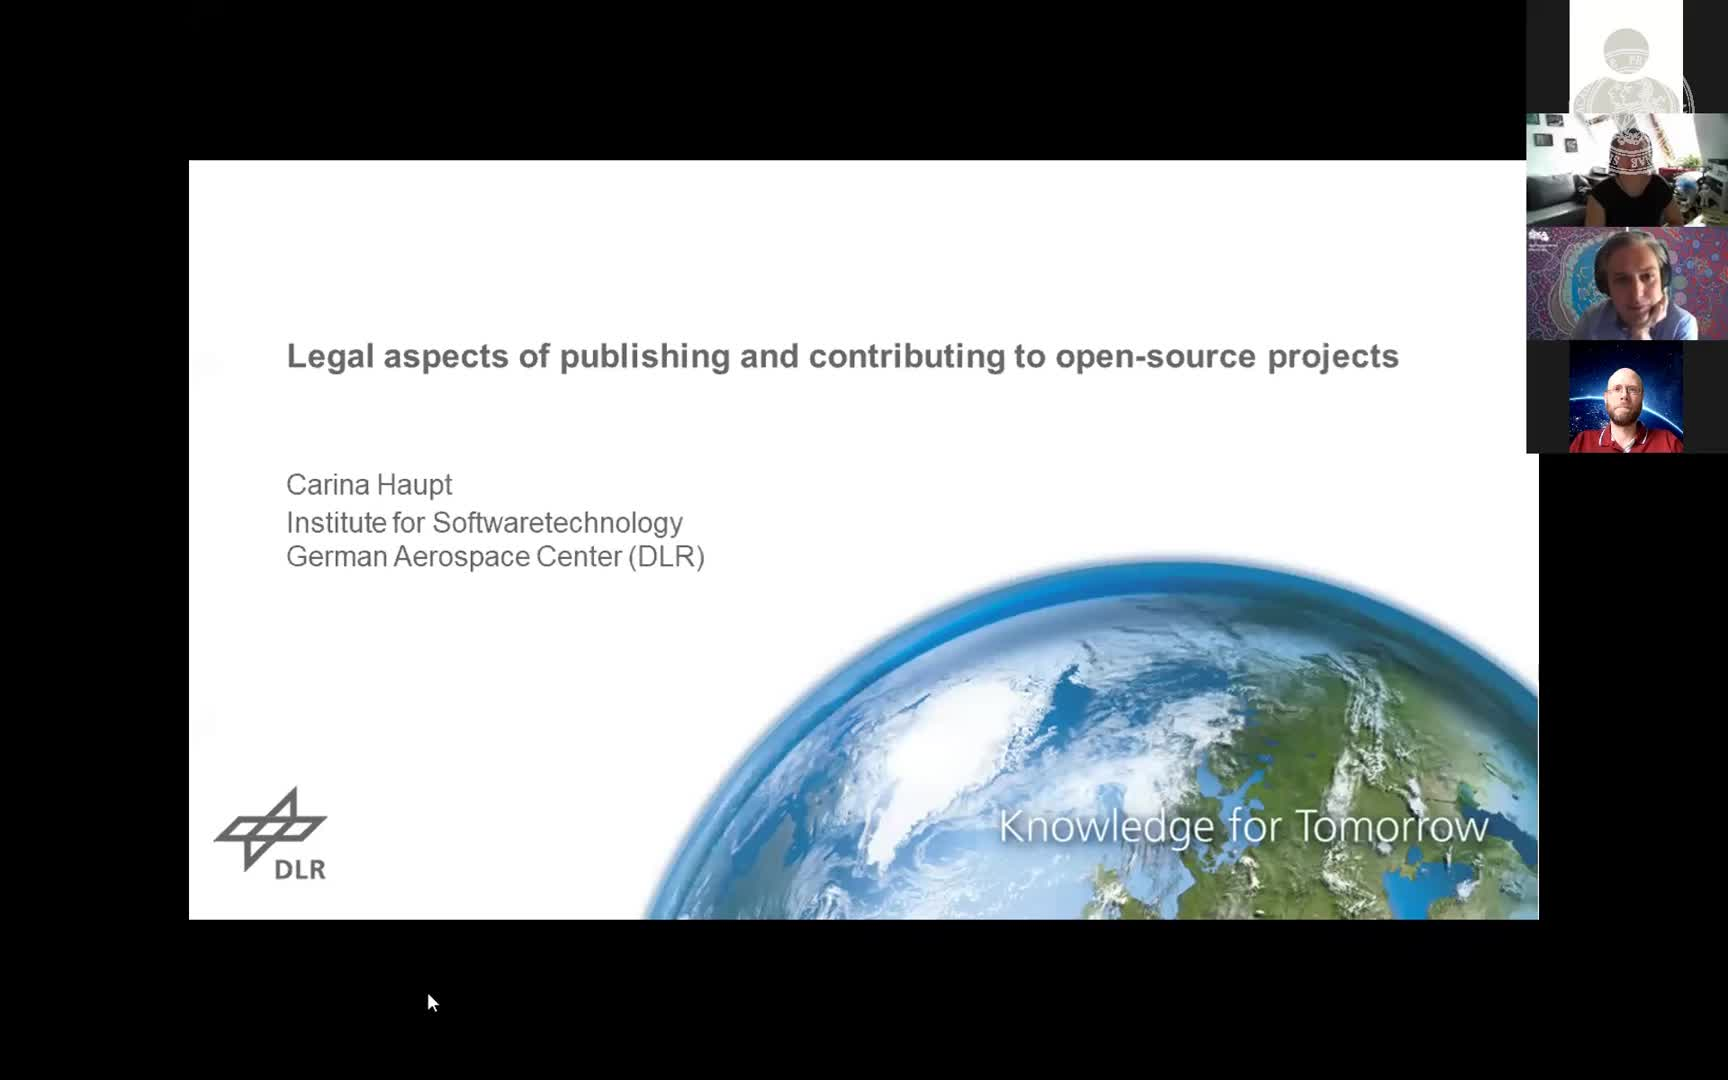 Legal aspects of publishing and contributing to open-source projects preview image